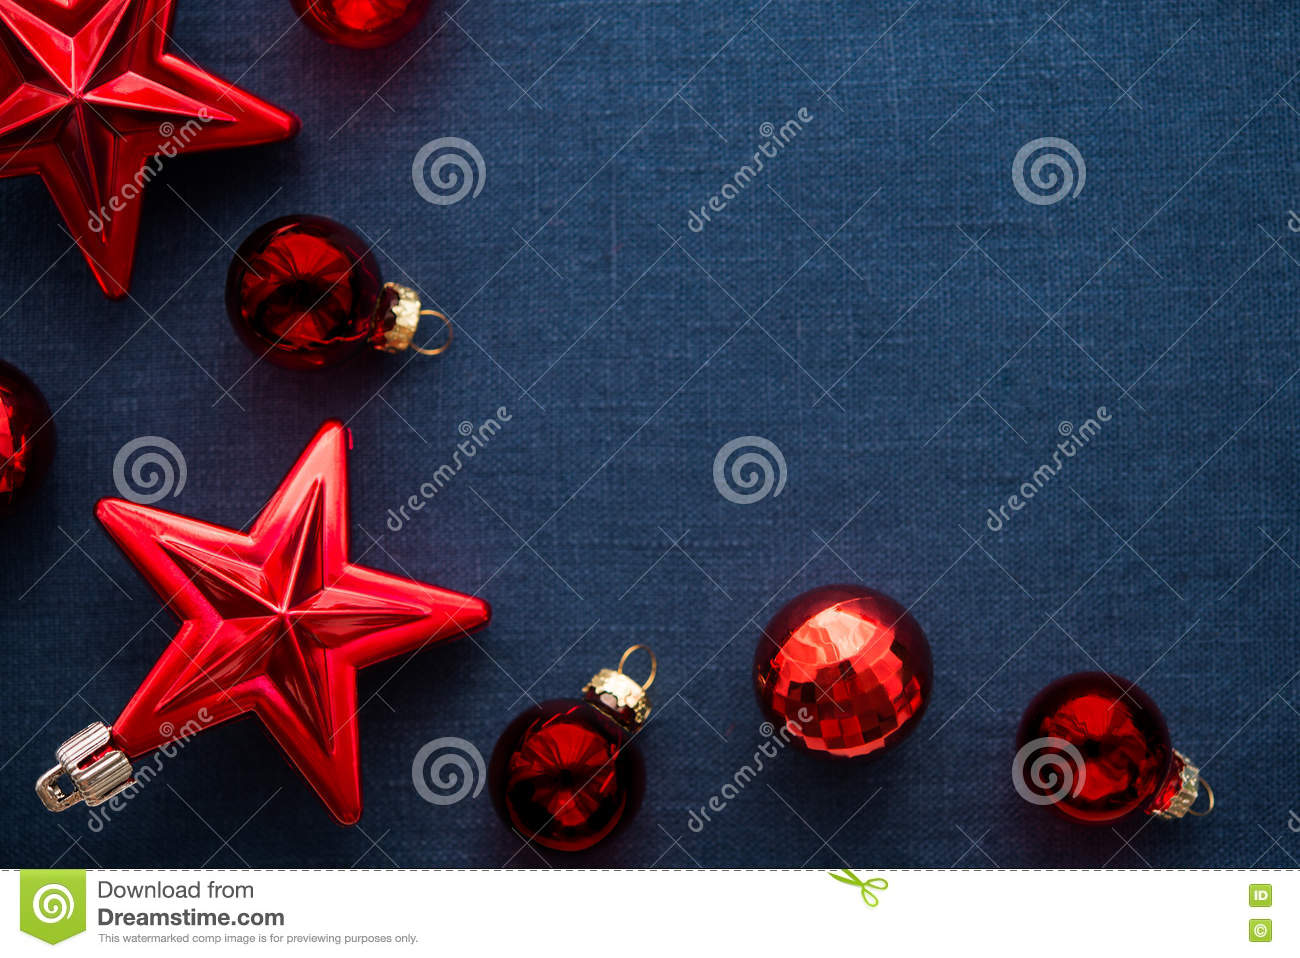 red christmas decorations stars and balls on dark blue canvas background merry christmas card winter holidays xmas theme happy new year - Blue Christmas Theme Decorations